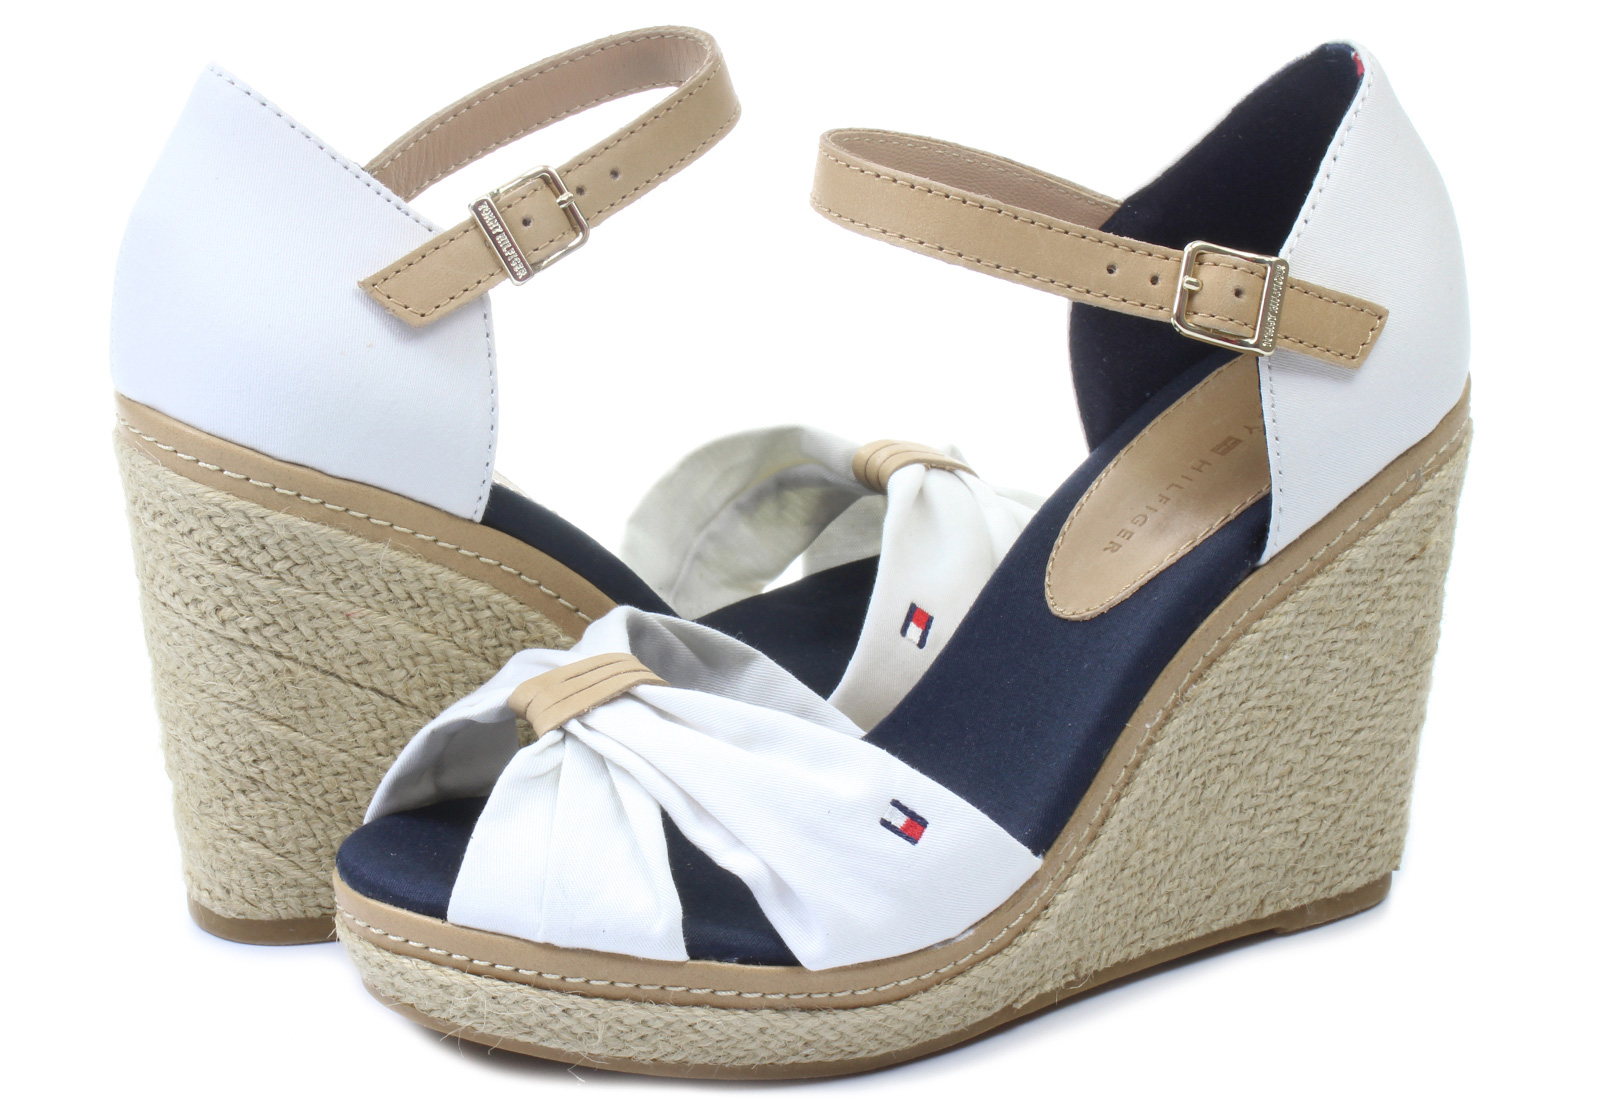 tommy hilfiger sandals emery 54d 14s 6770 100 online shop for sneakers shoes and boots. Black Bedroom Furniture Sets. Home Design Ideas